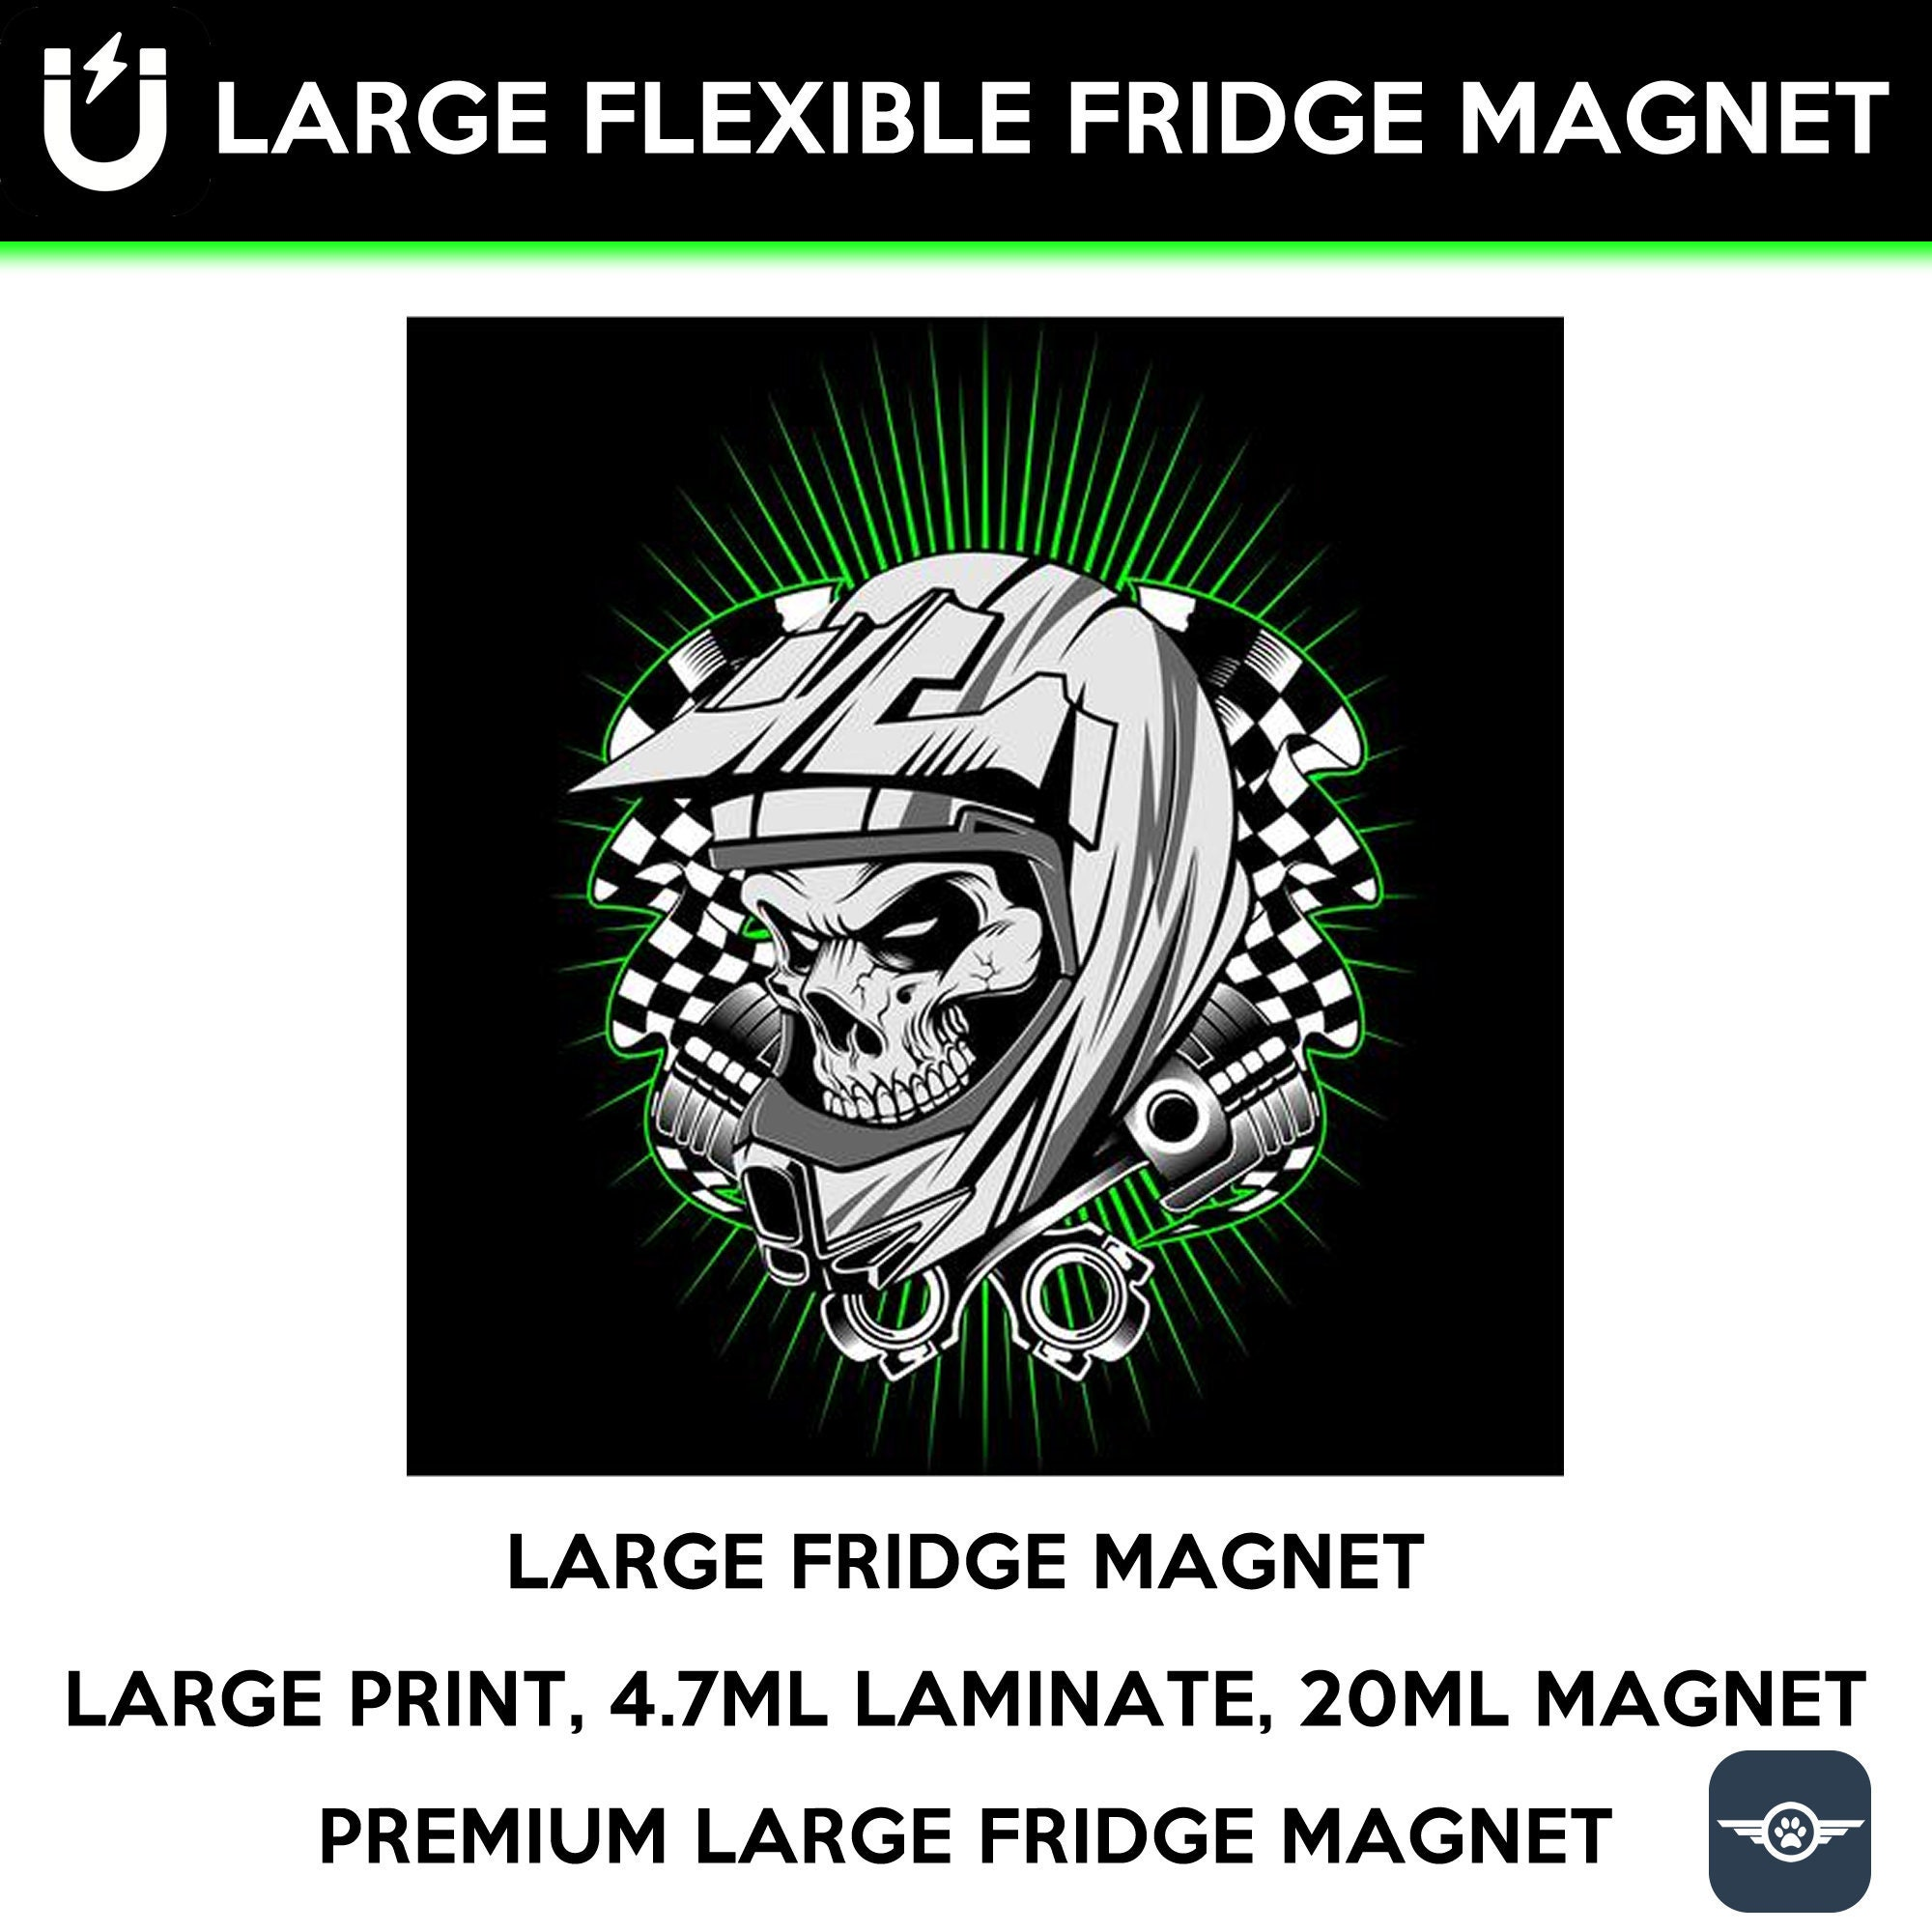 Skull and helmet large fridge magnet, large 6 1/2 x 6 1/2 inch premium fridge magnet that stands out.